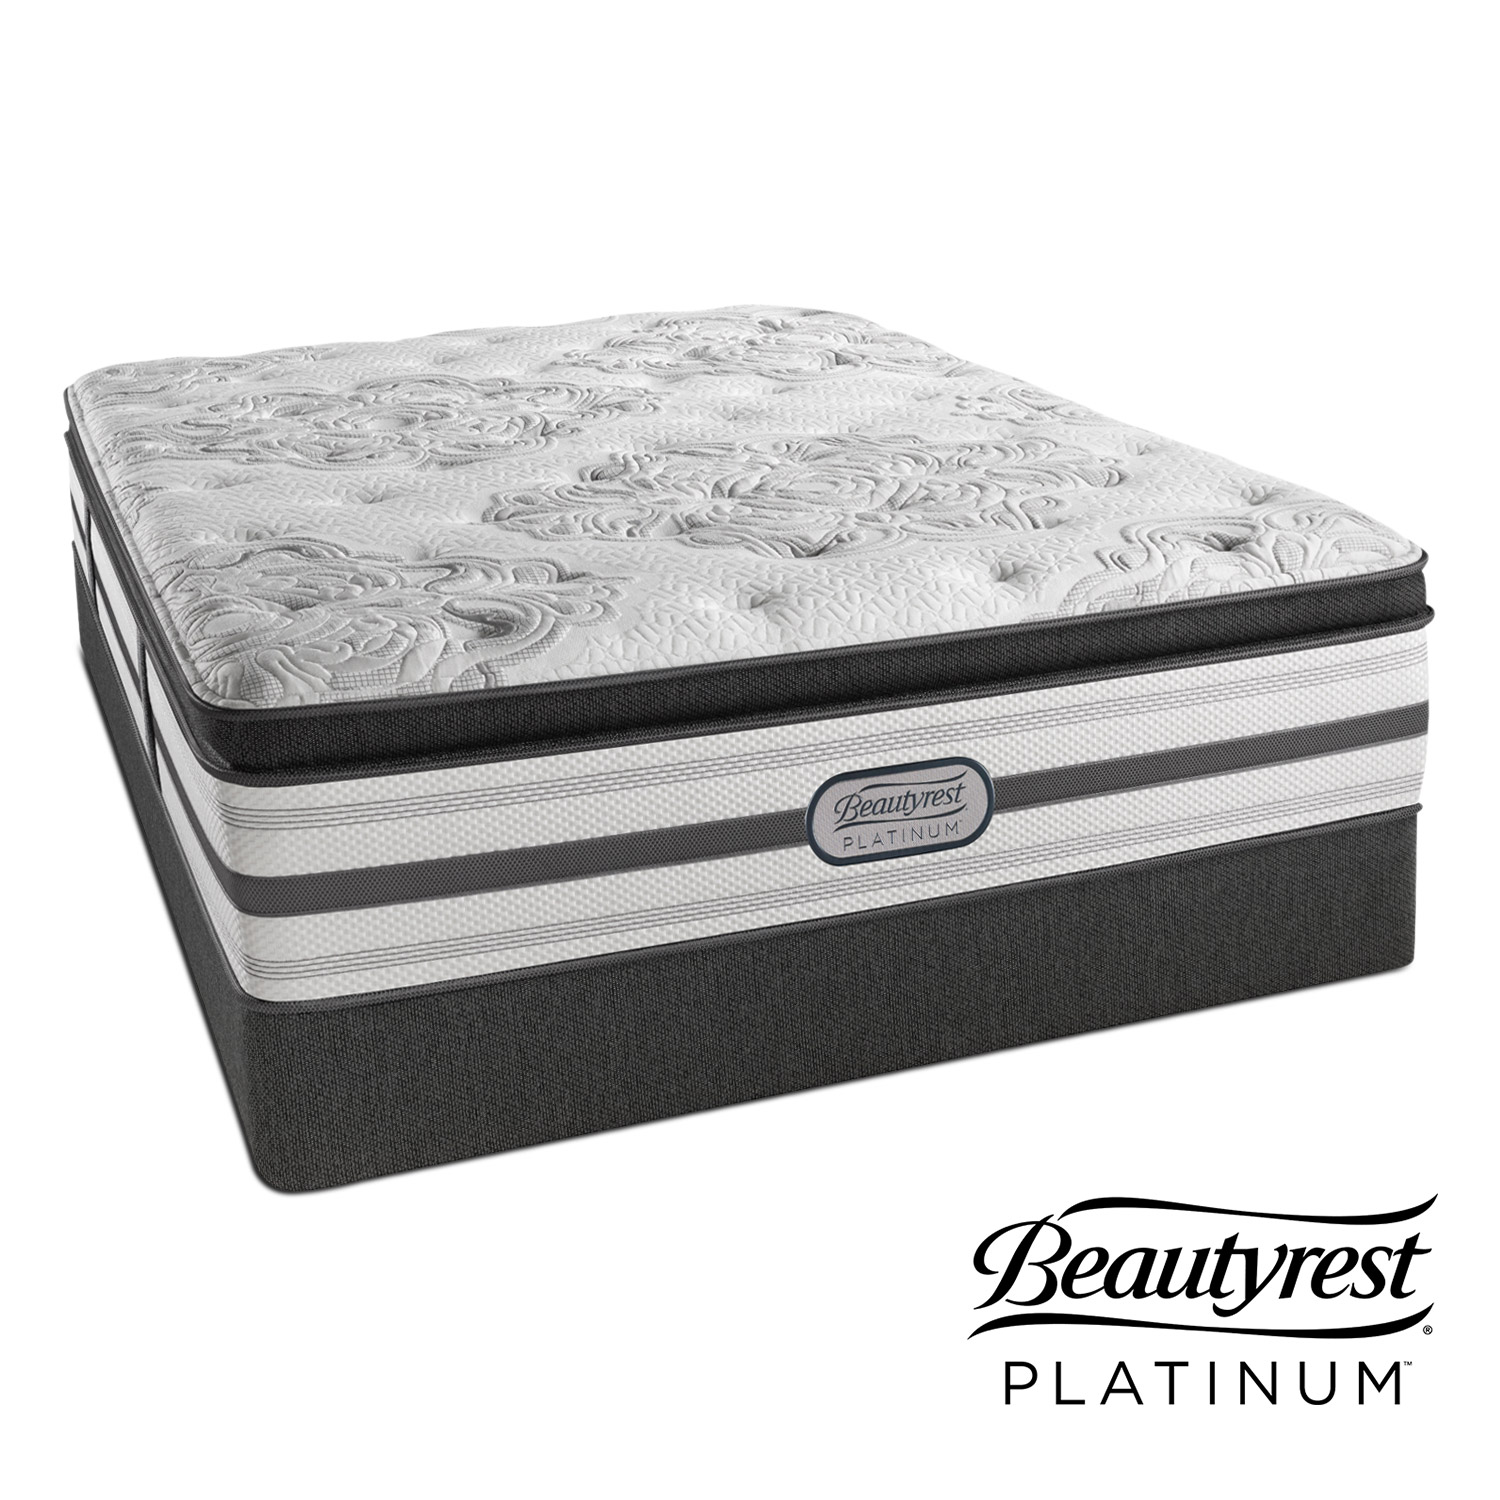 Mattresses and Bedding - Genevieve Queen Mattress/Split Foundation Set